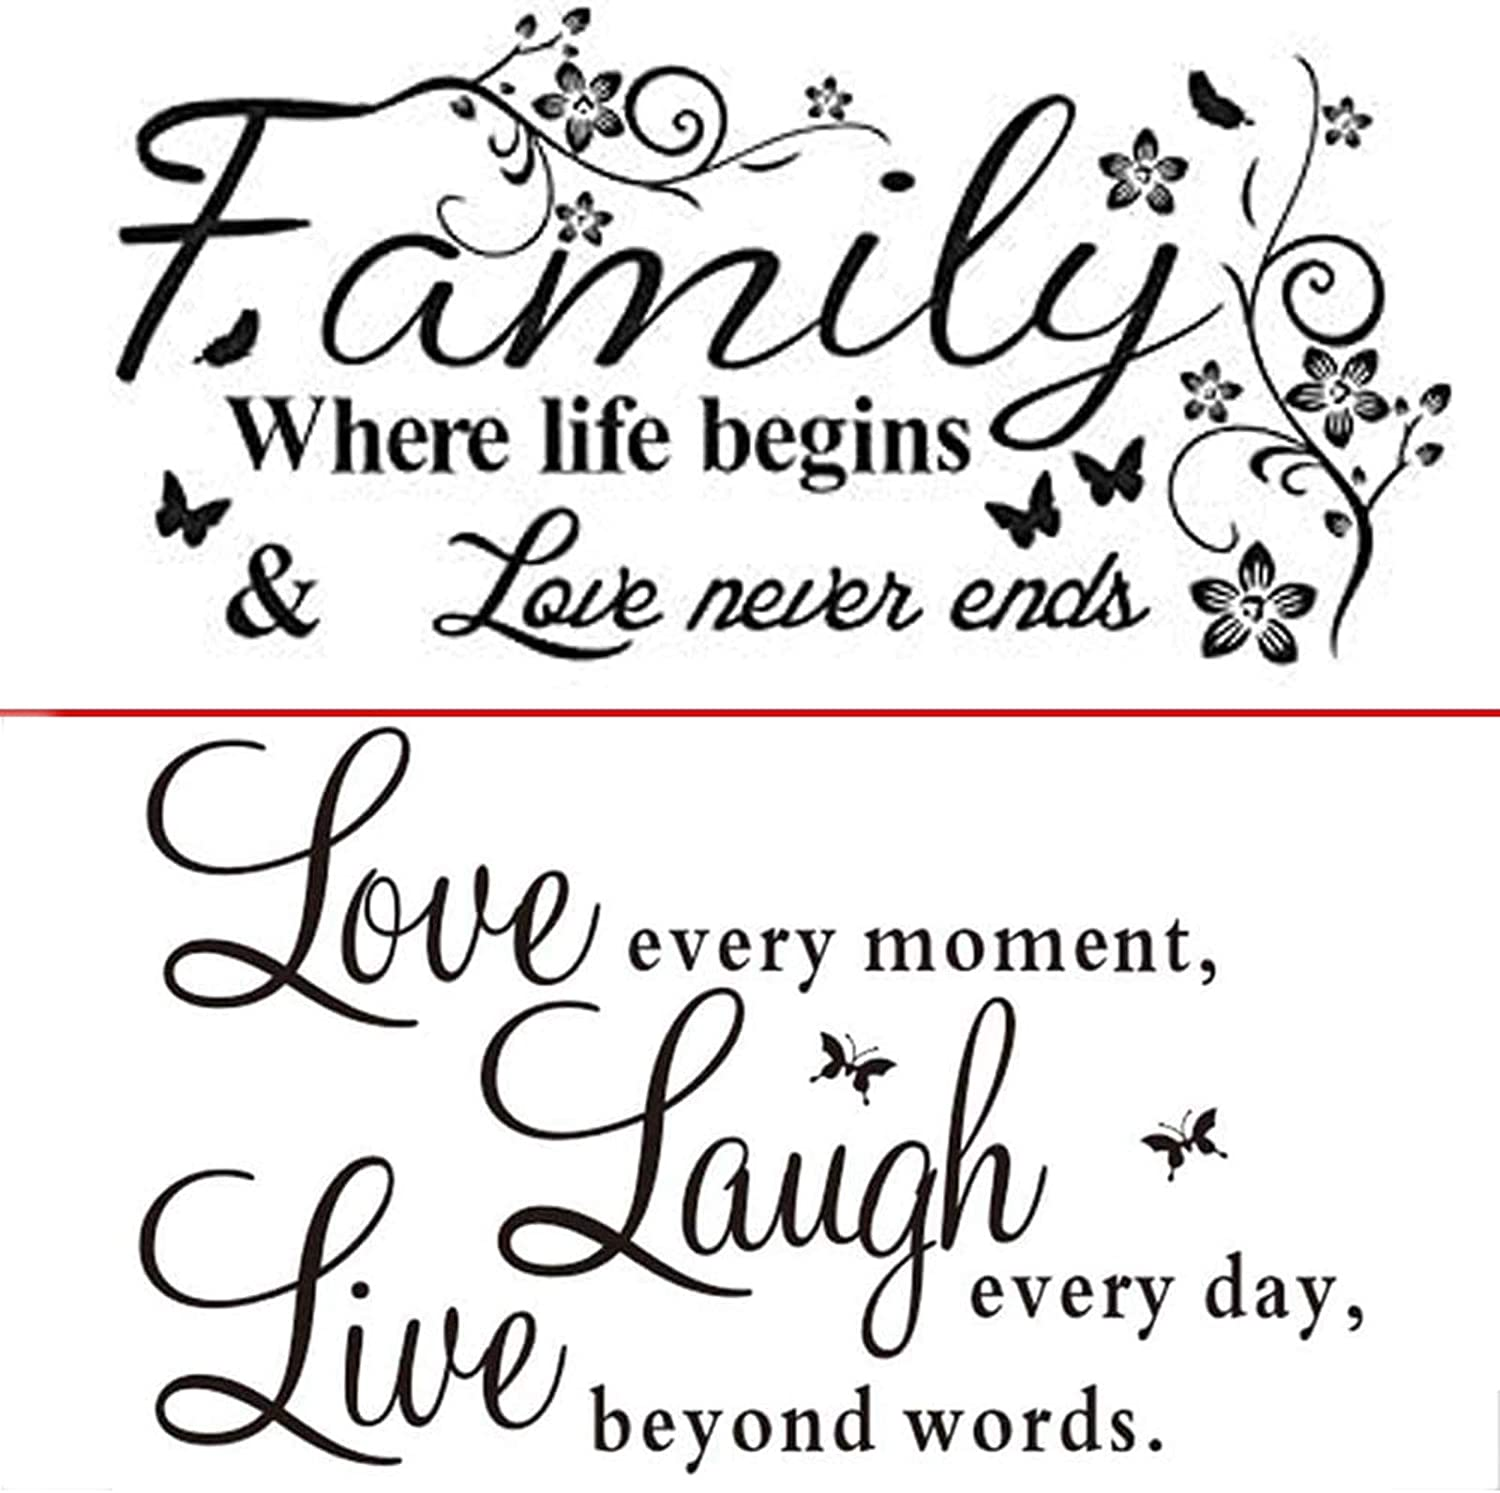 2 Pack Family Love Art Quotes Words Design Wall Decal Sticker. Live Every Moment,Laugh Every Day,Love Beyond Words, Wall Sticker Motivational Wall Decals, Family Inspirational Wall Stickers Quotes